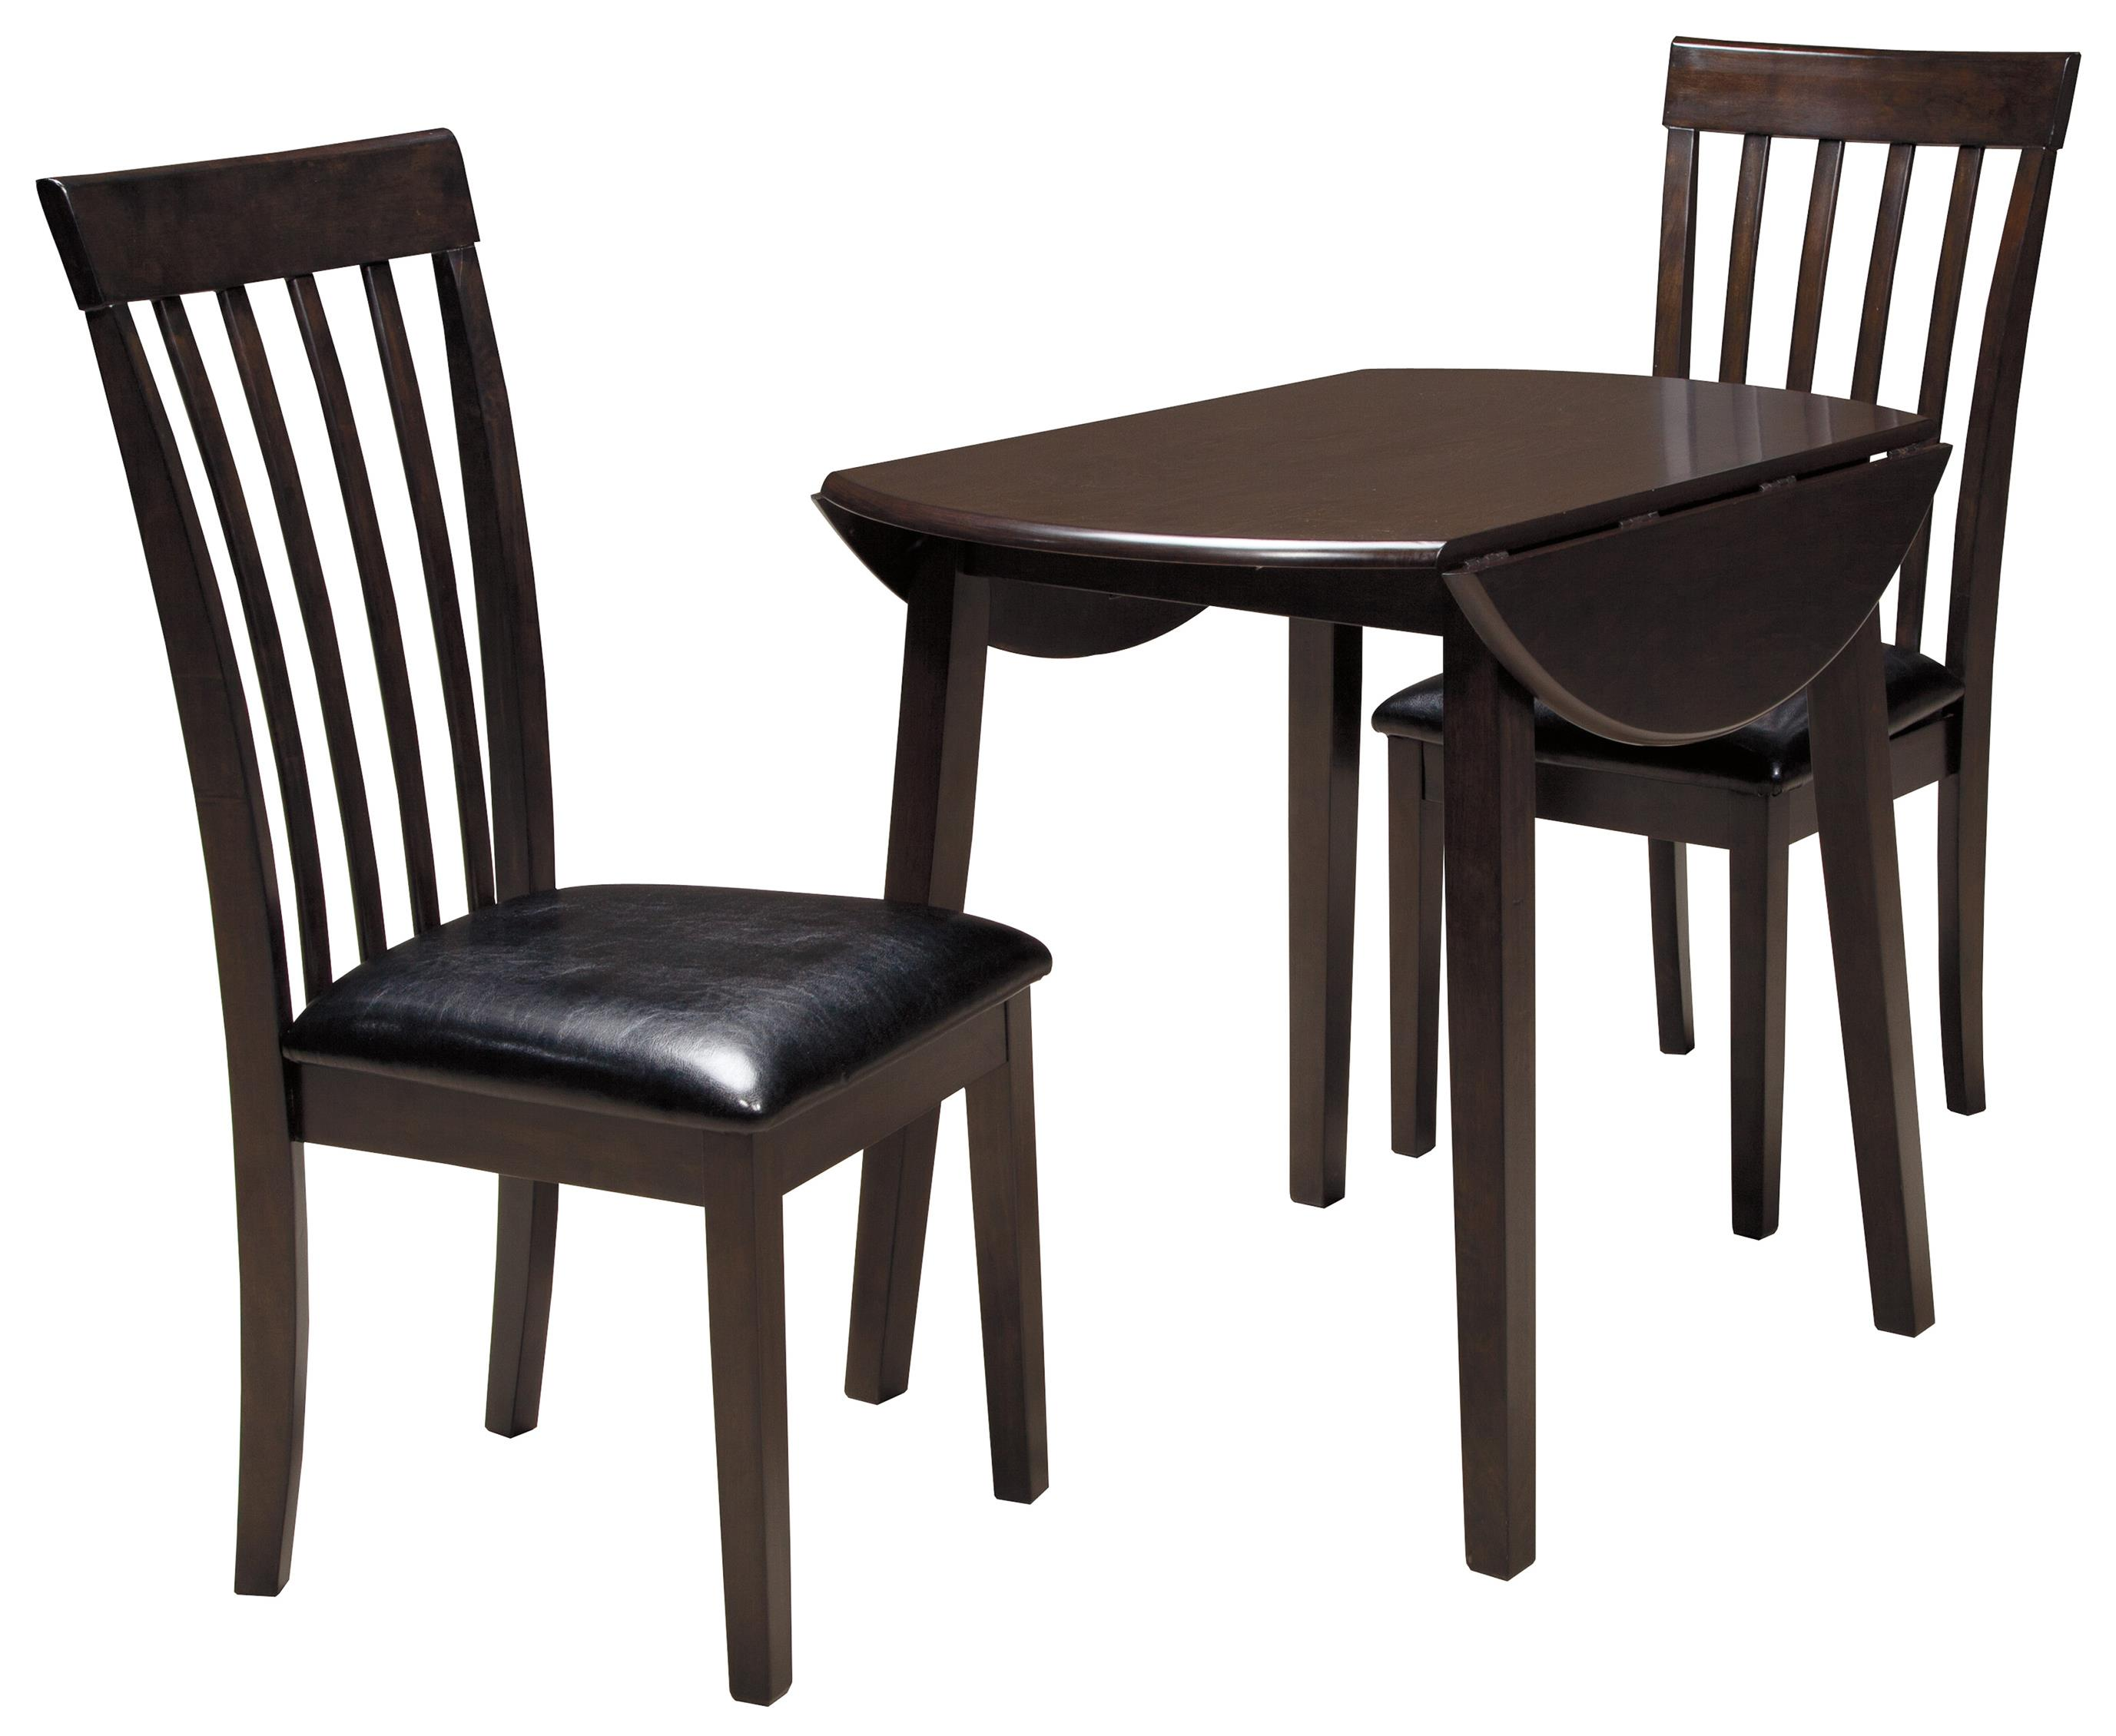 Hammis 3-Piece Round Drop Leaf Table Set by Signature Design by Ashley at Northeast Factory Direct